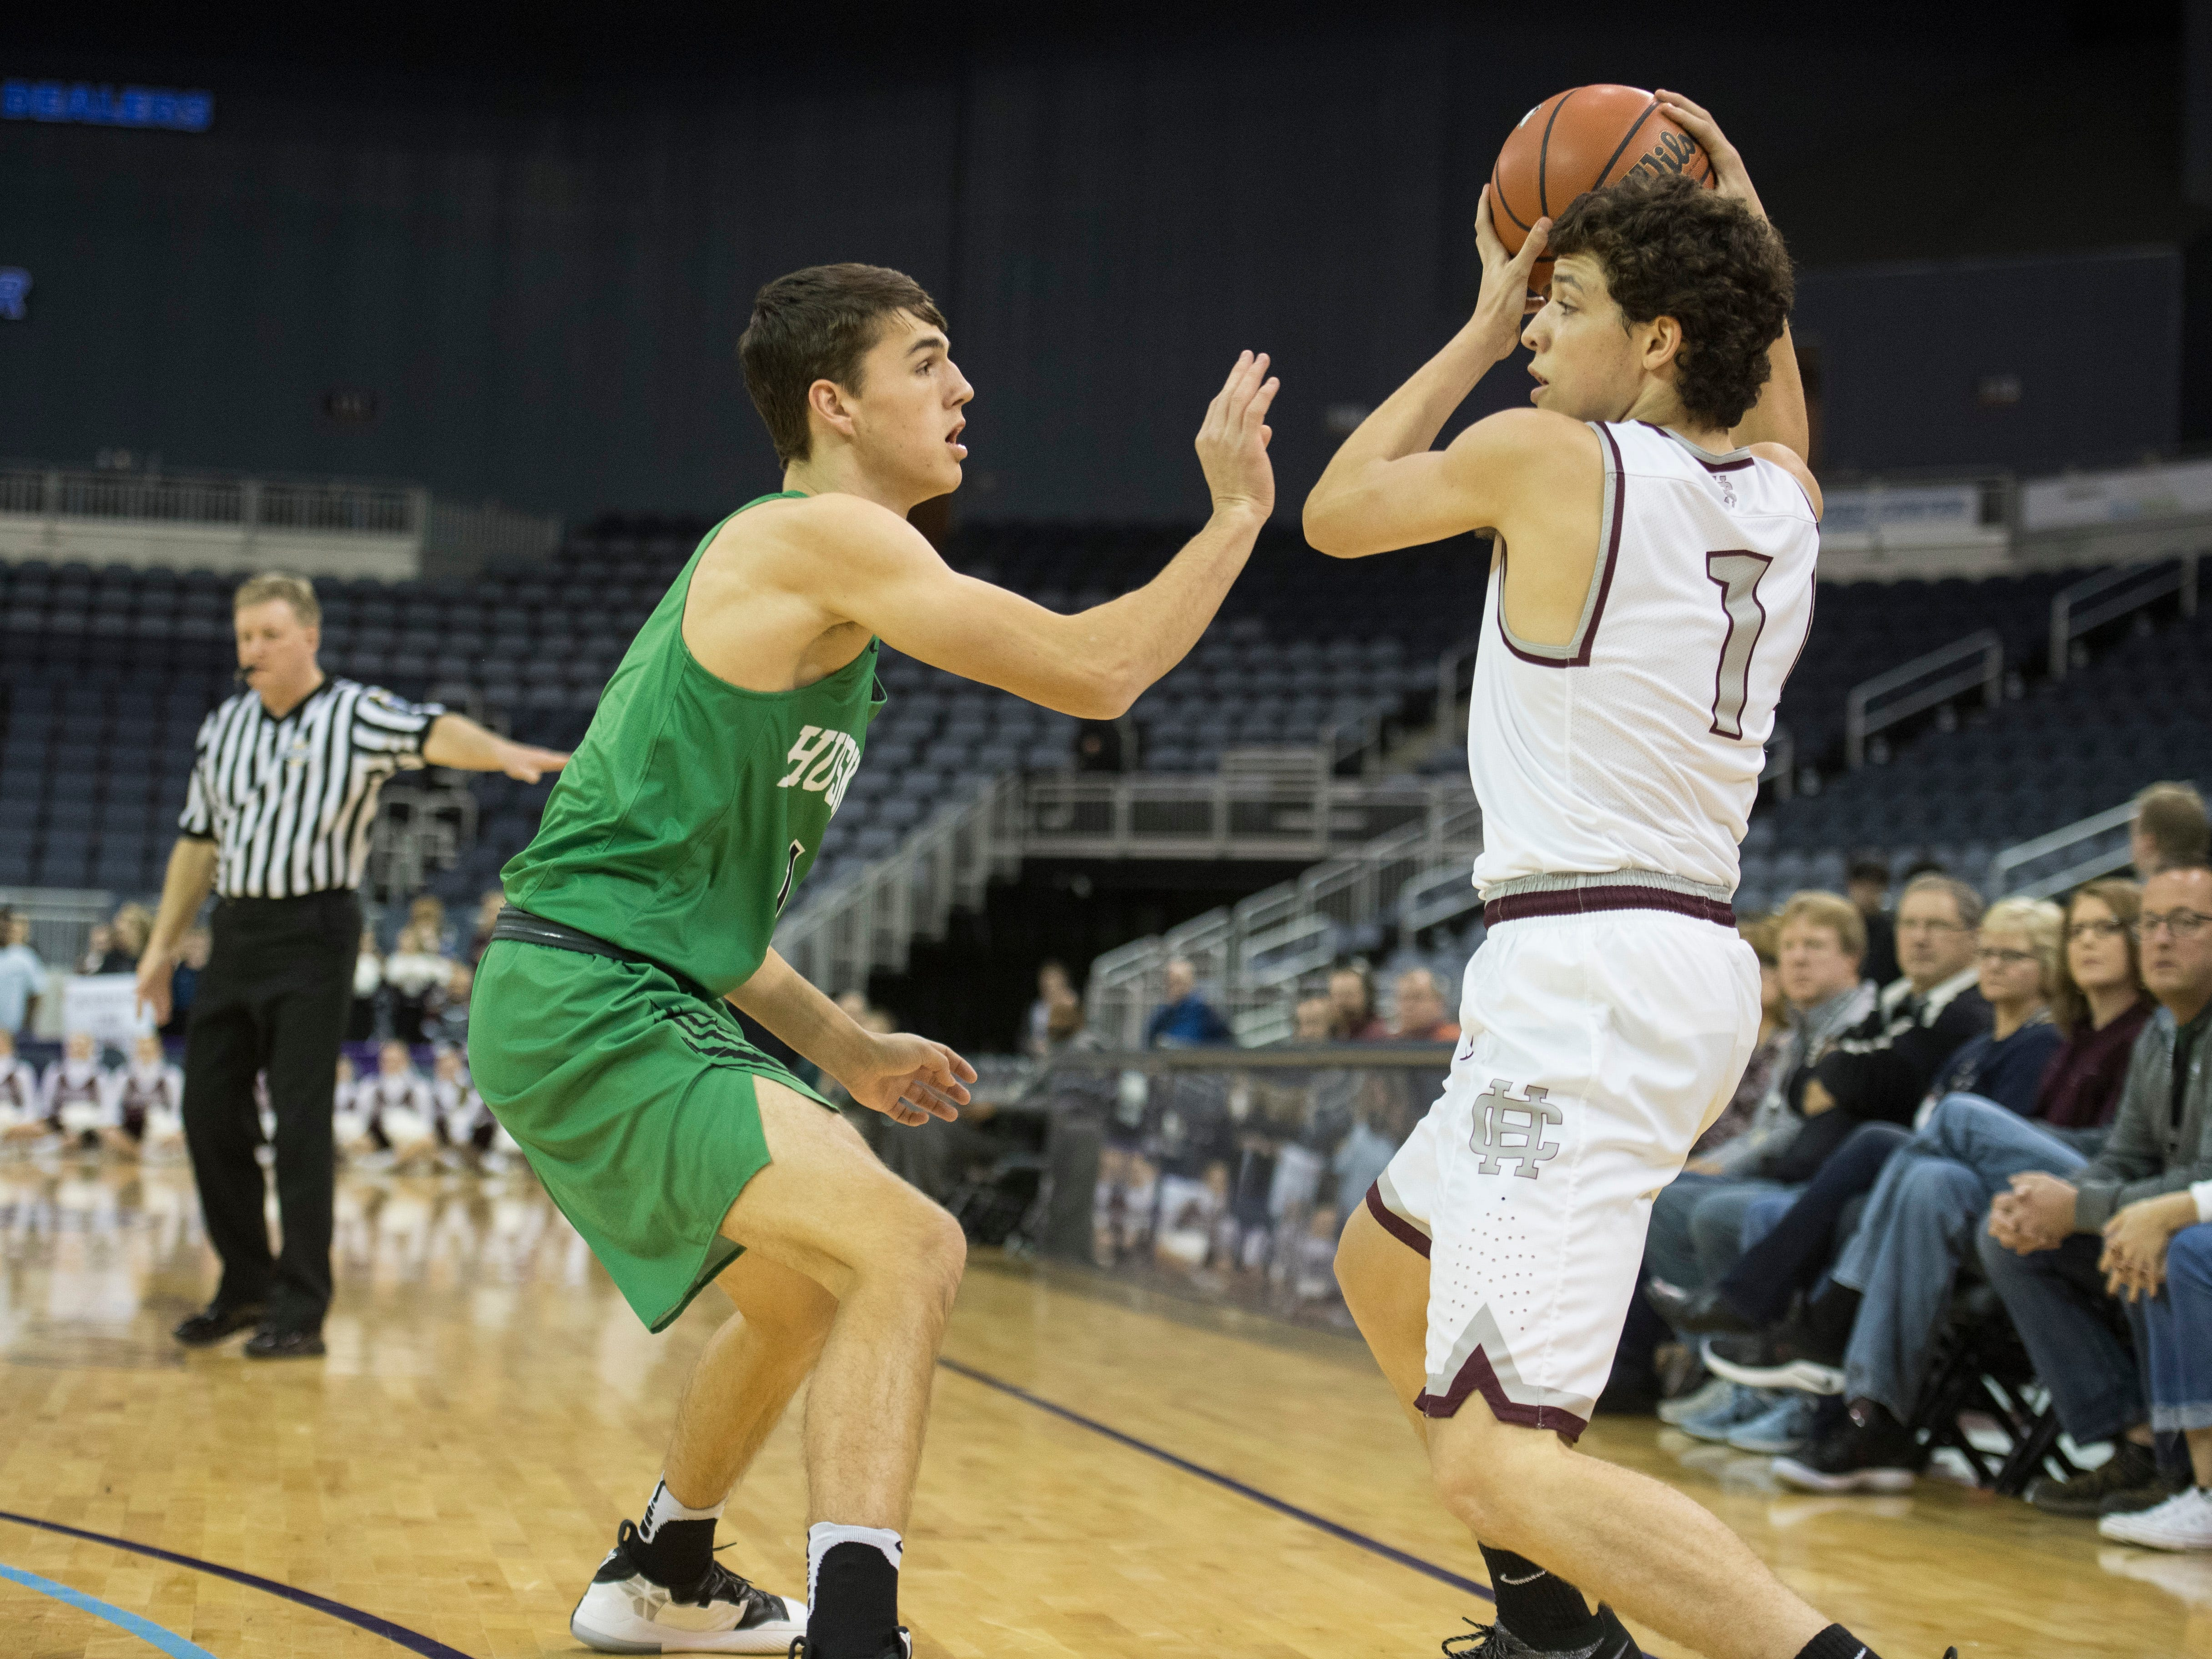 Henderson's Corey Stewart (1) looks for an open man to pass the ball during the Henderson County vs Evansville North basketball game in the River City Showcase at the Ford Center Friday, Dec. 7, 2018.